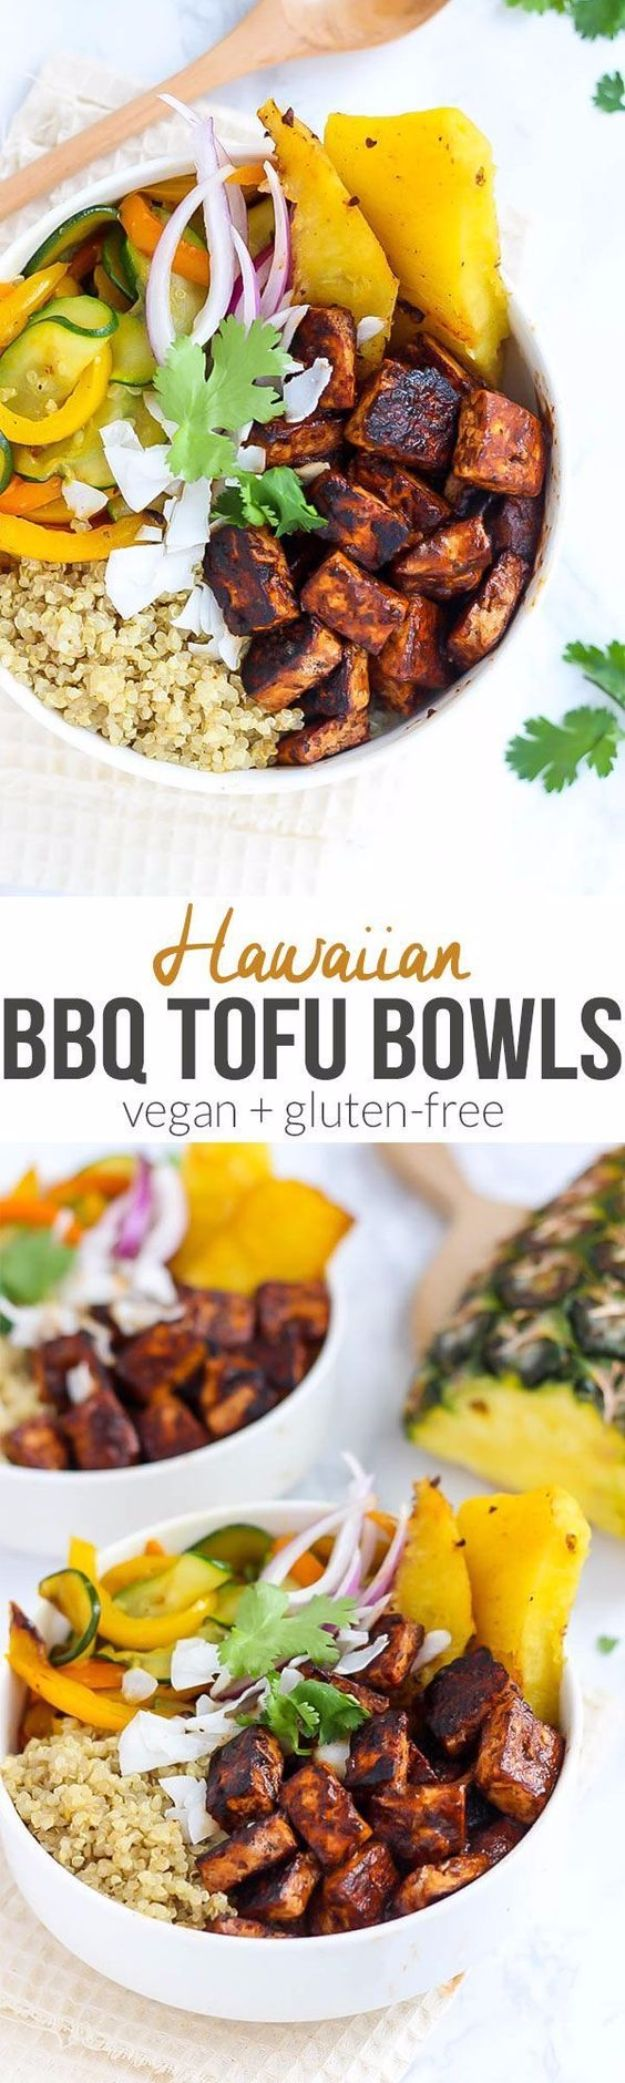 Best Barbecue Recipes - Hawaiian BBQ Tofu Bowls - Easy BBQ Recipe Ideas for Lunch, Dinner and Quick Party Appetizers - Grilled and Smoked Foods, Chicken, Beef and Meat, Fish and Vegetable Ideas for Grilling - Sauces and Rubs, Seasonings and Favorite Bar BBQ Tips #bbq #bbqrecipes #grilling